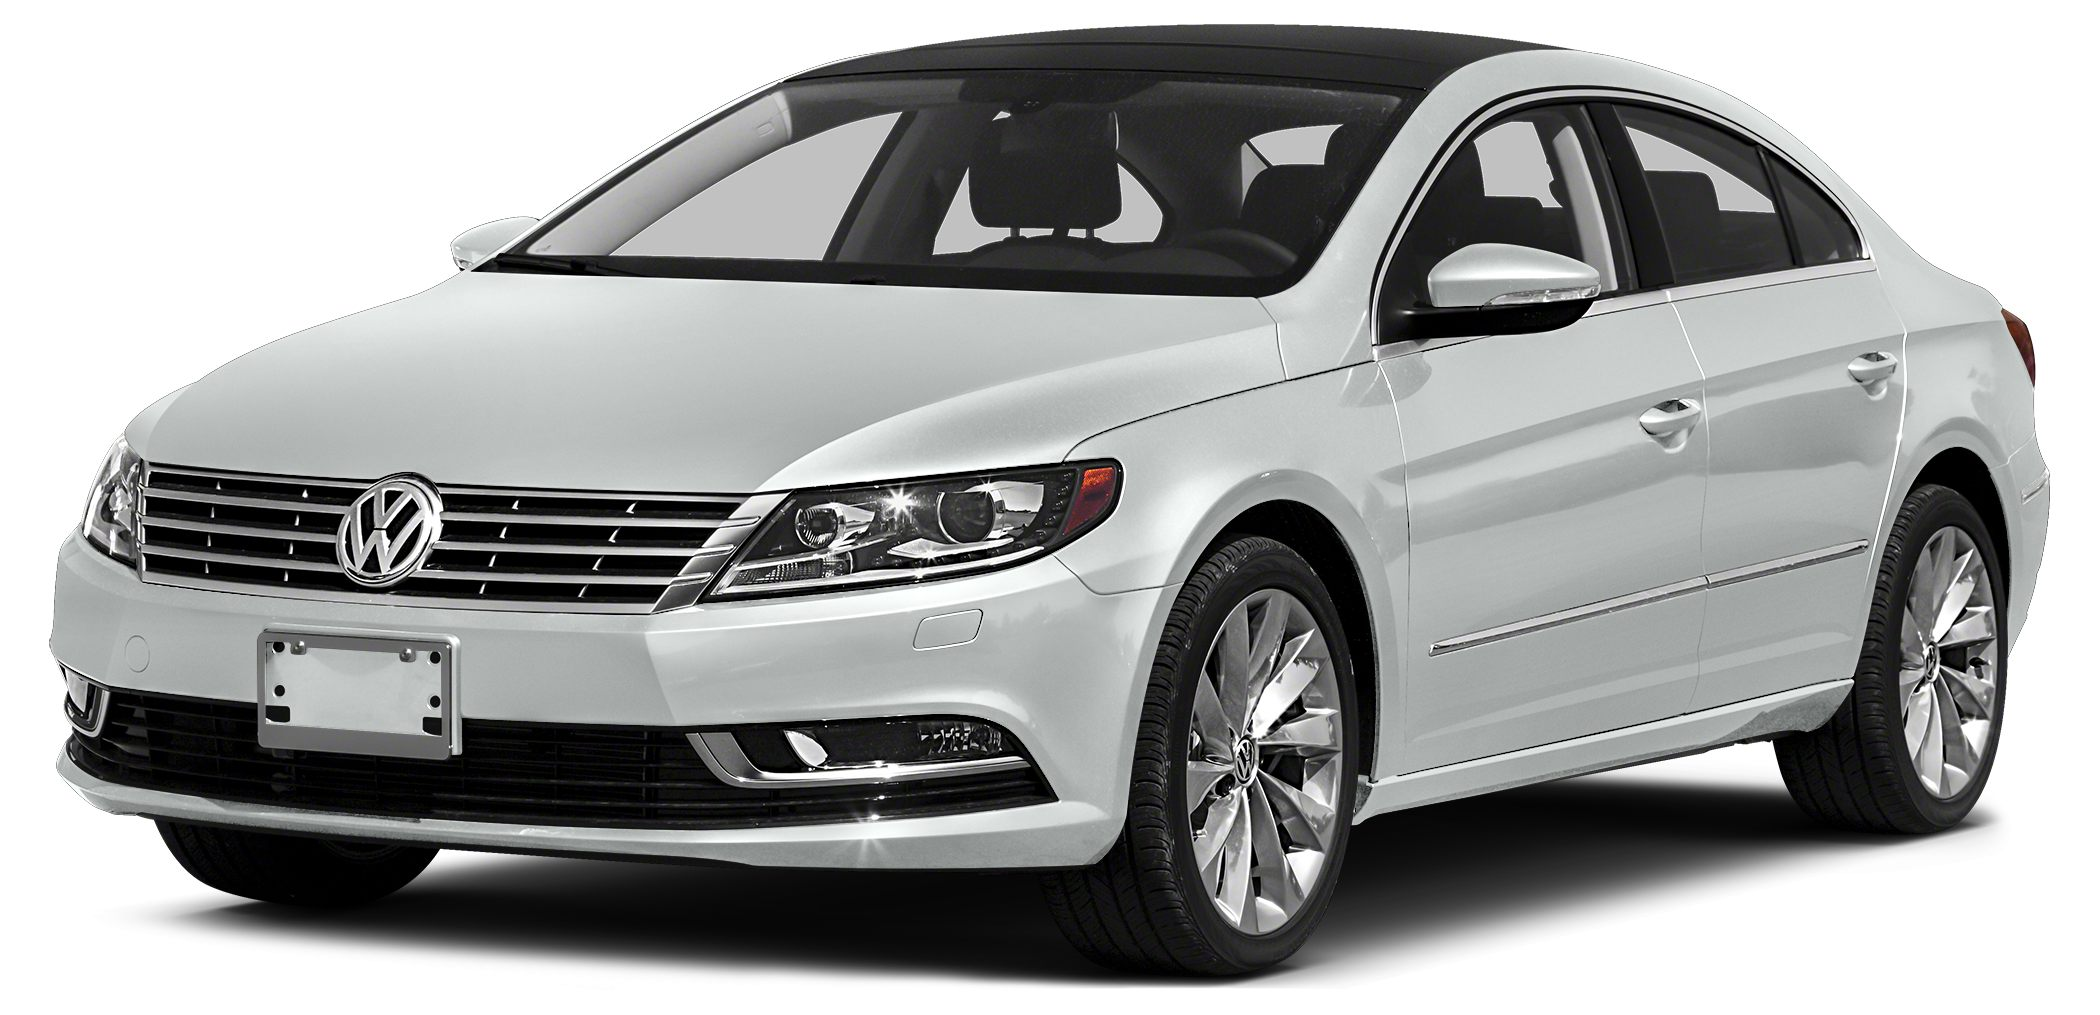 2013 Volkswagen CC 20T Sport Plus This 2013 Volkswagen CC Sport is a local trade in on a new Merc